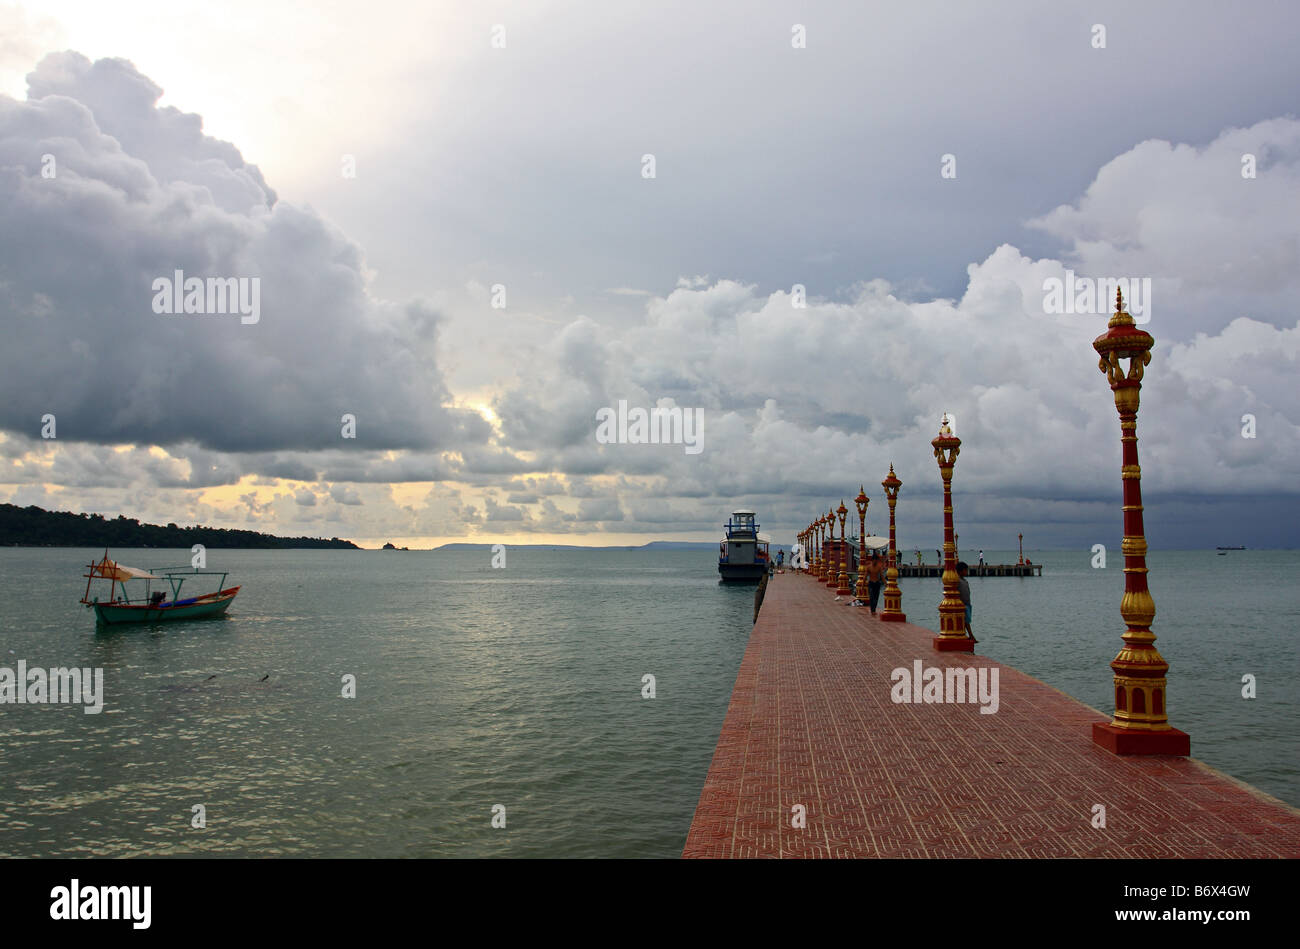 Red jetty with boat in Sihanoukville at a stormy sunset with thunder clouds, Cambodia, South East Asia - Stock Image